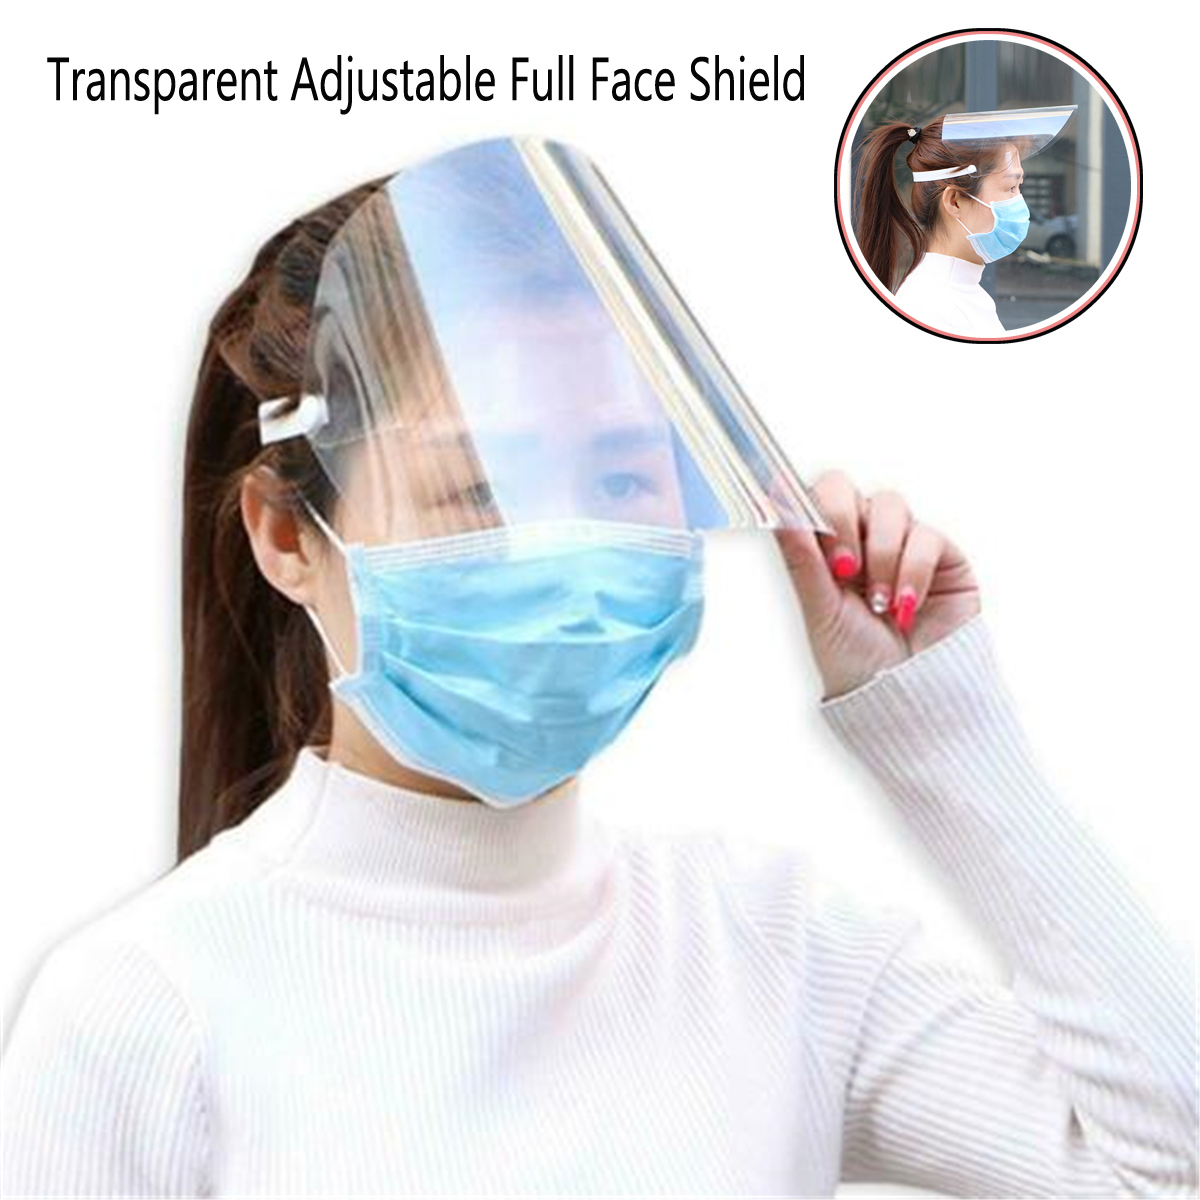 Transparent Adjustable Full Face Shield Plastic Anti-fog Garden Industry Dental Protective Mask Clear Flip-Up Visor